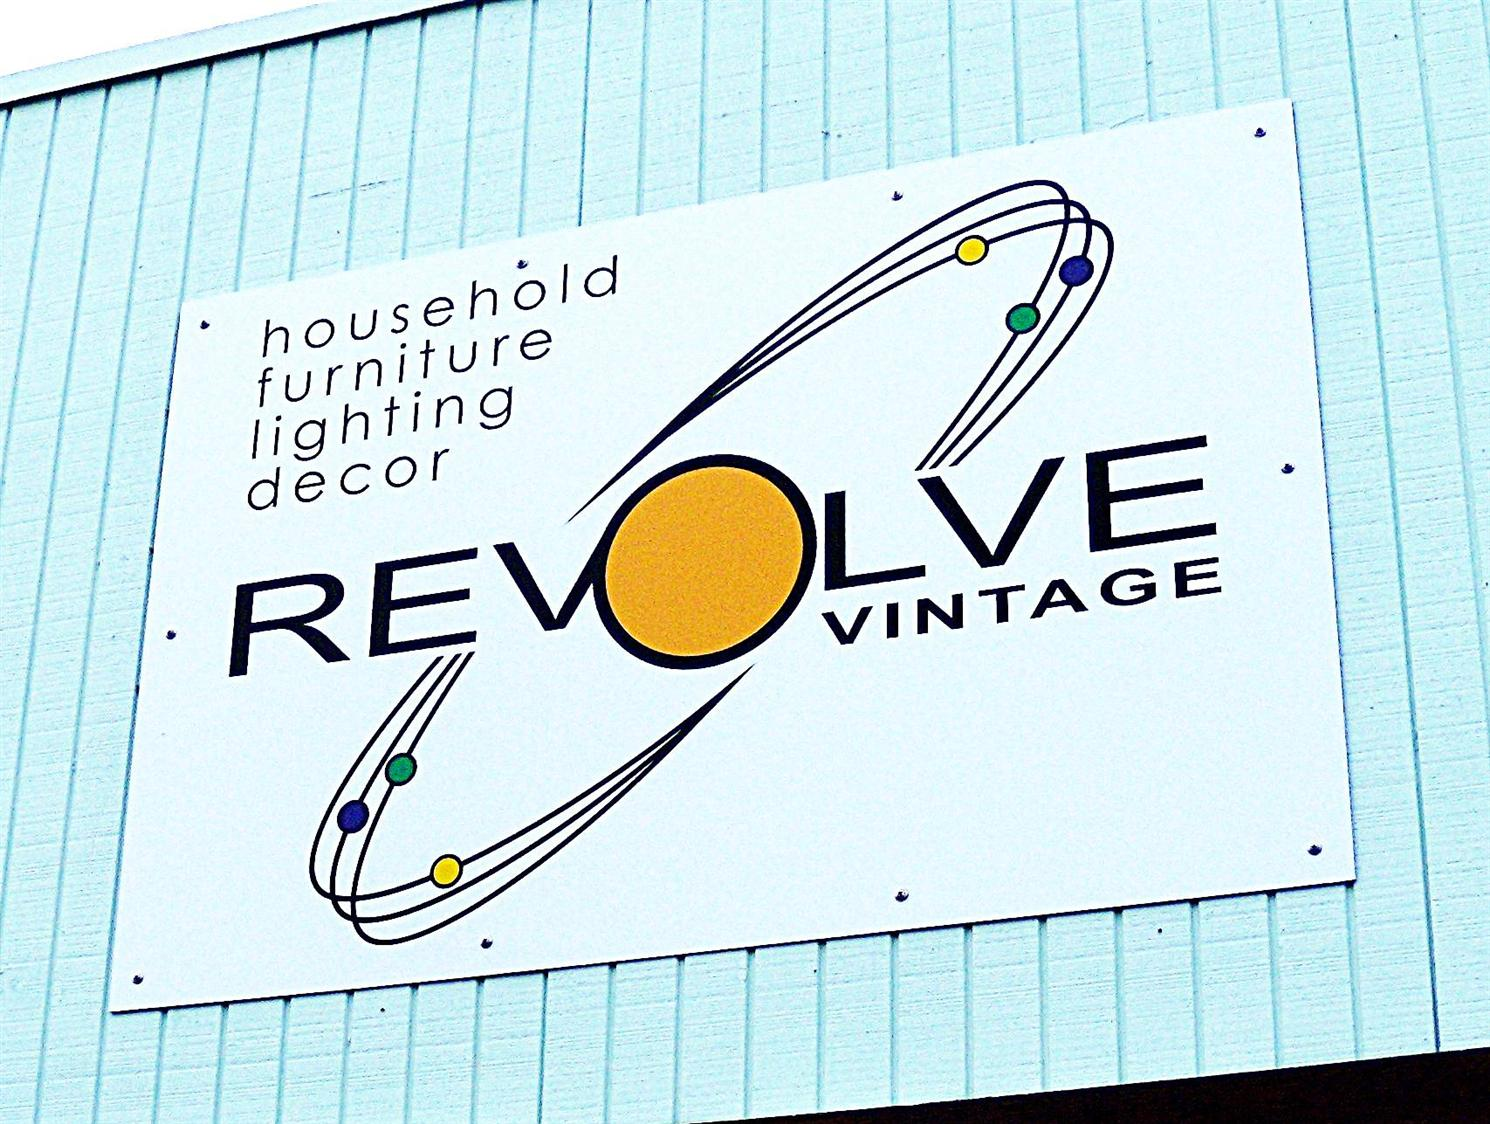 REVOLVE - Resale mid-century modern furnishings located in Milwaukie; almost feels like a secret treasure spot, due to the location being just outside of Portland.